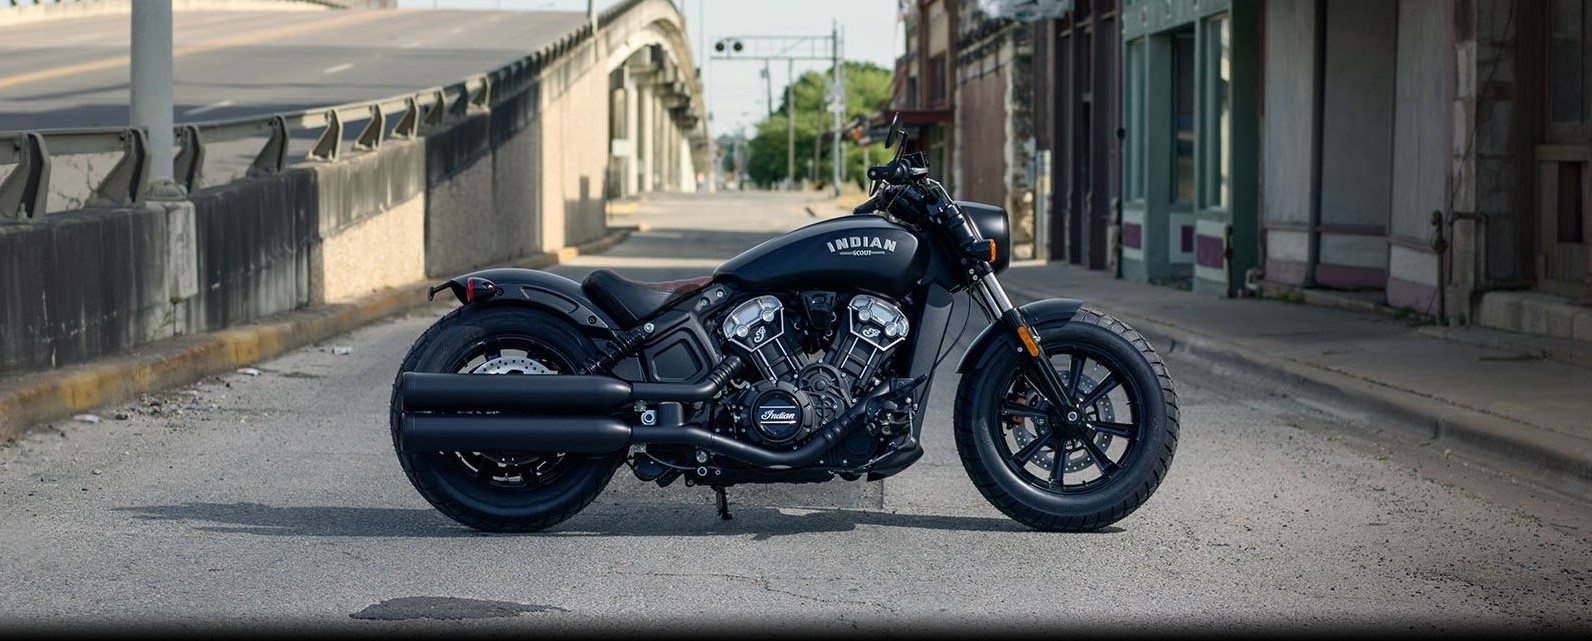 2018 indian scout bobber top speed. Black Bedroom Furniture Sets. Home Design Ideas